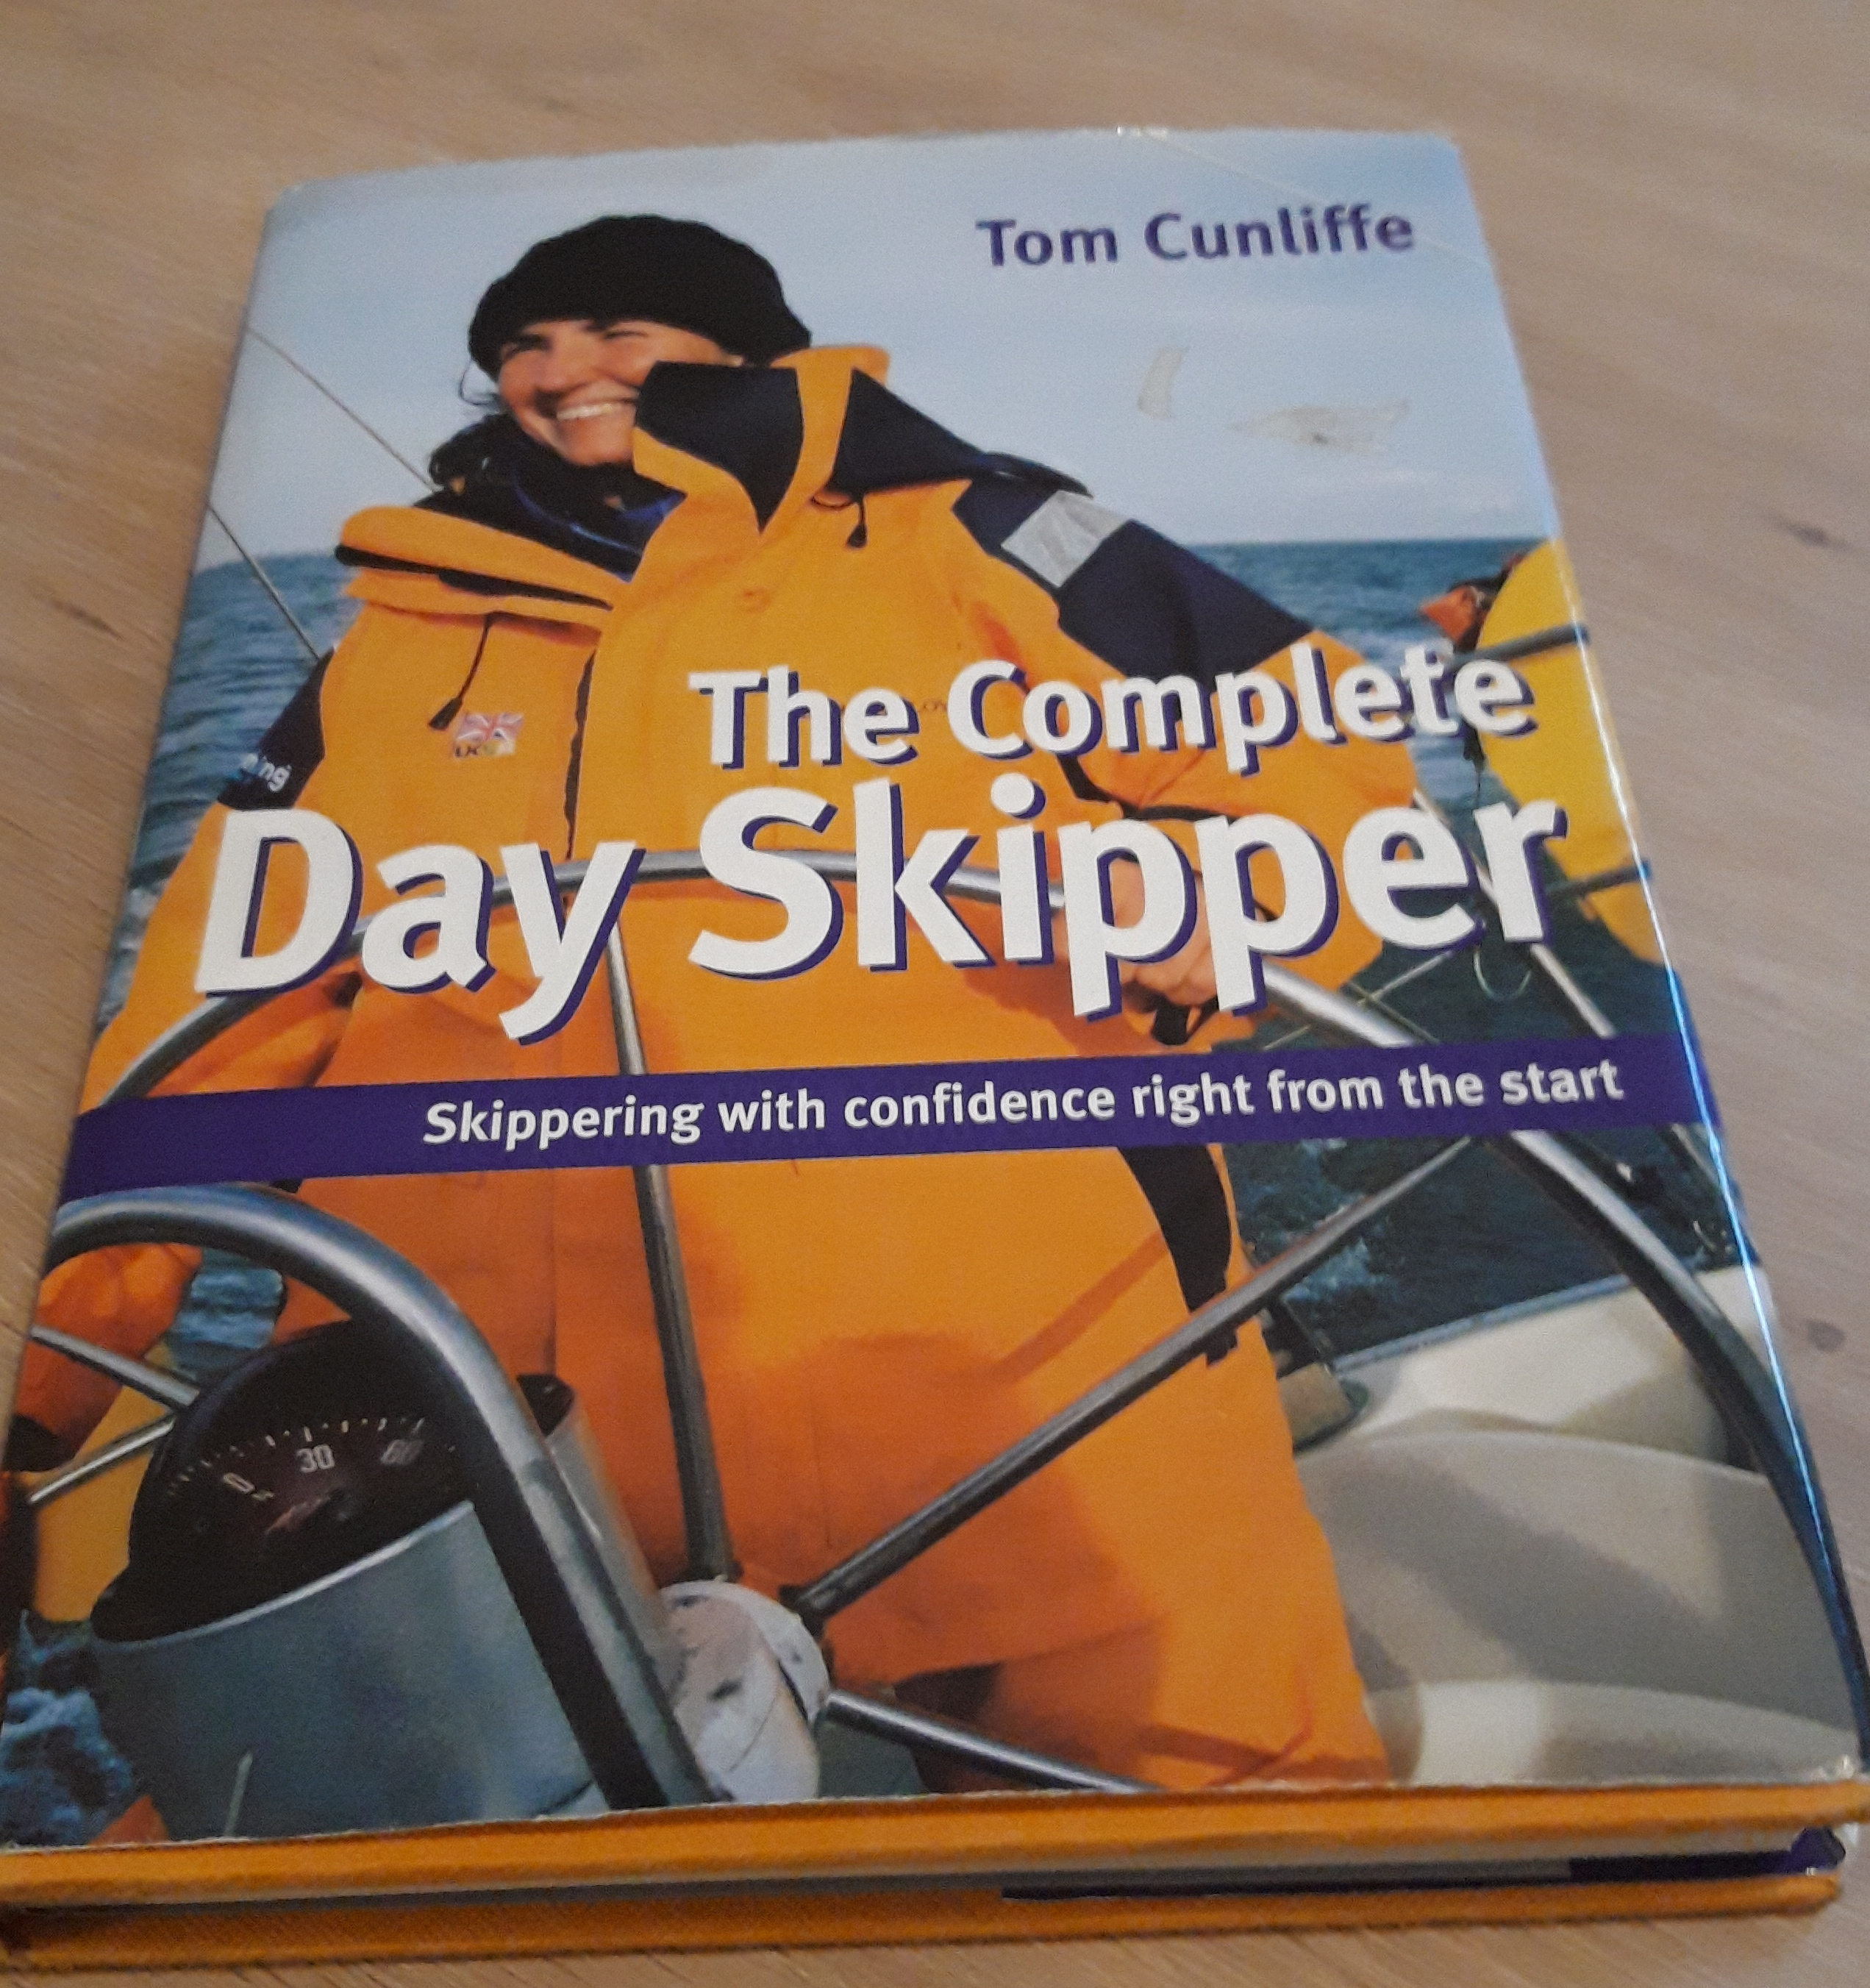 Tom Cunliffe - The Complete Day Skipper image 1